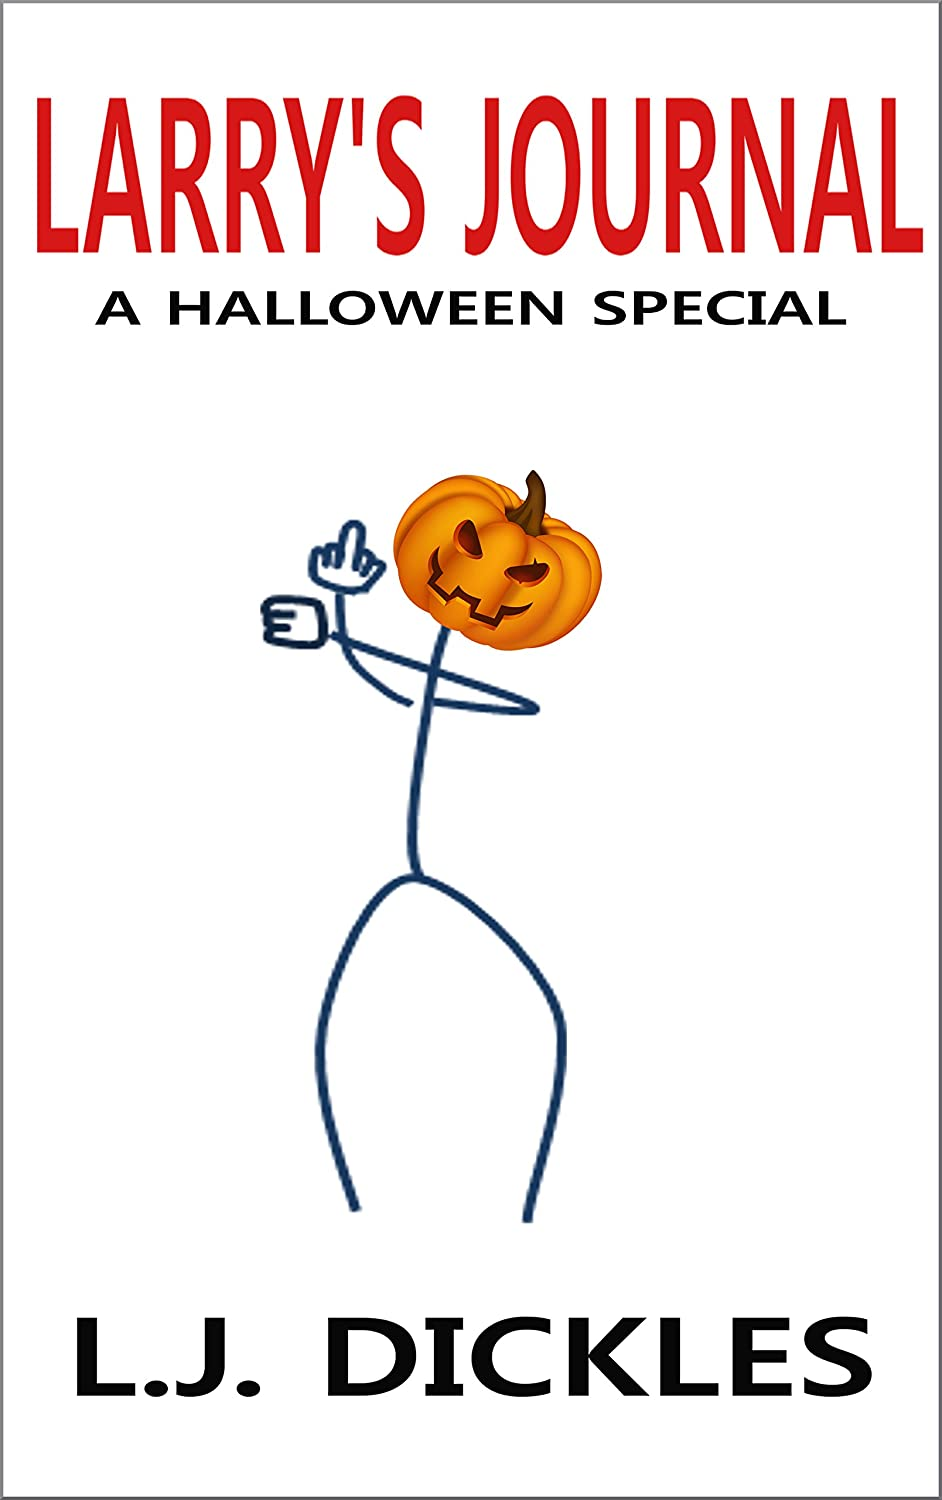 Larry's Journal: A Halloween Special by L.J. Dickles